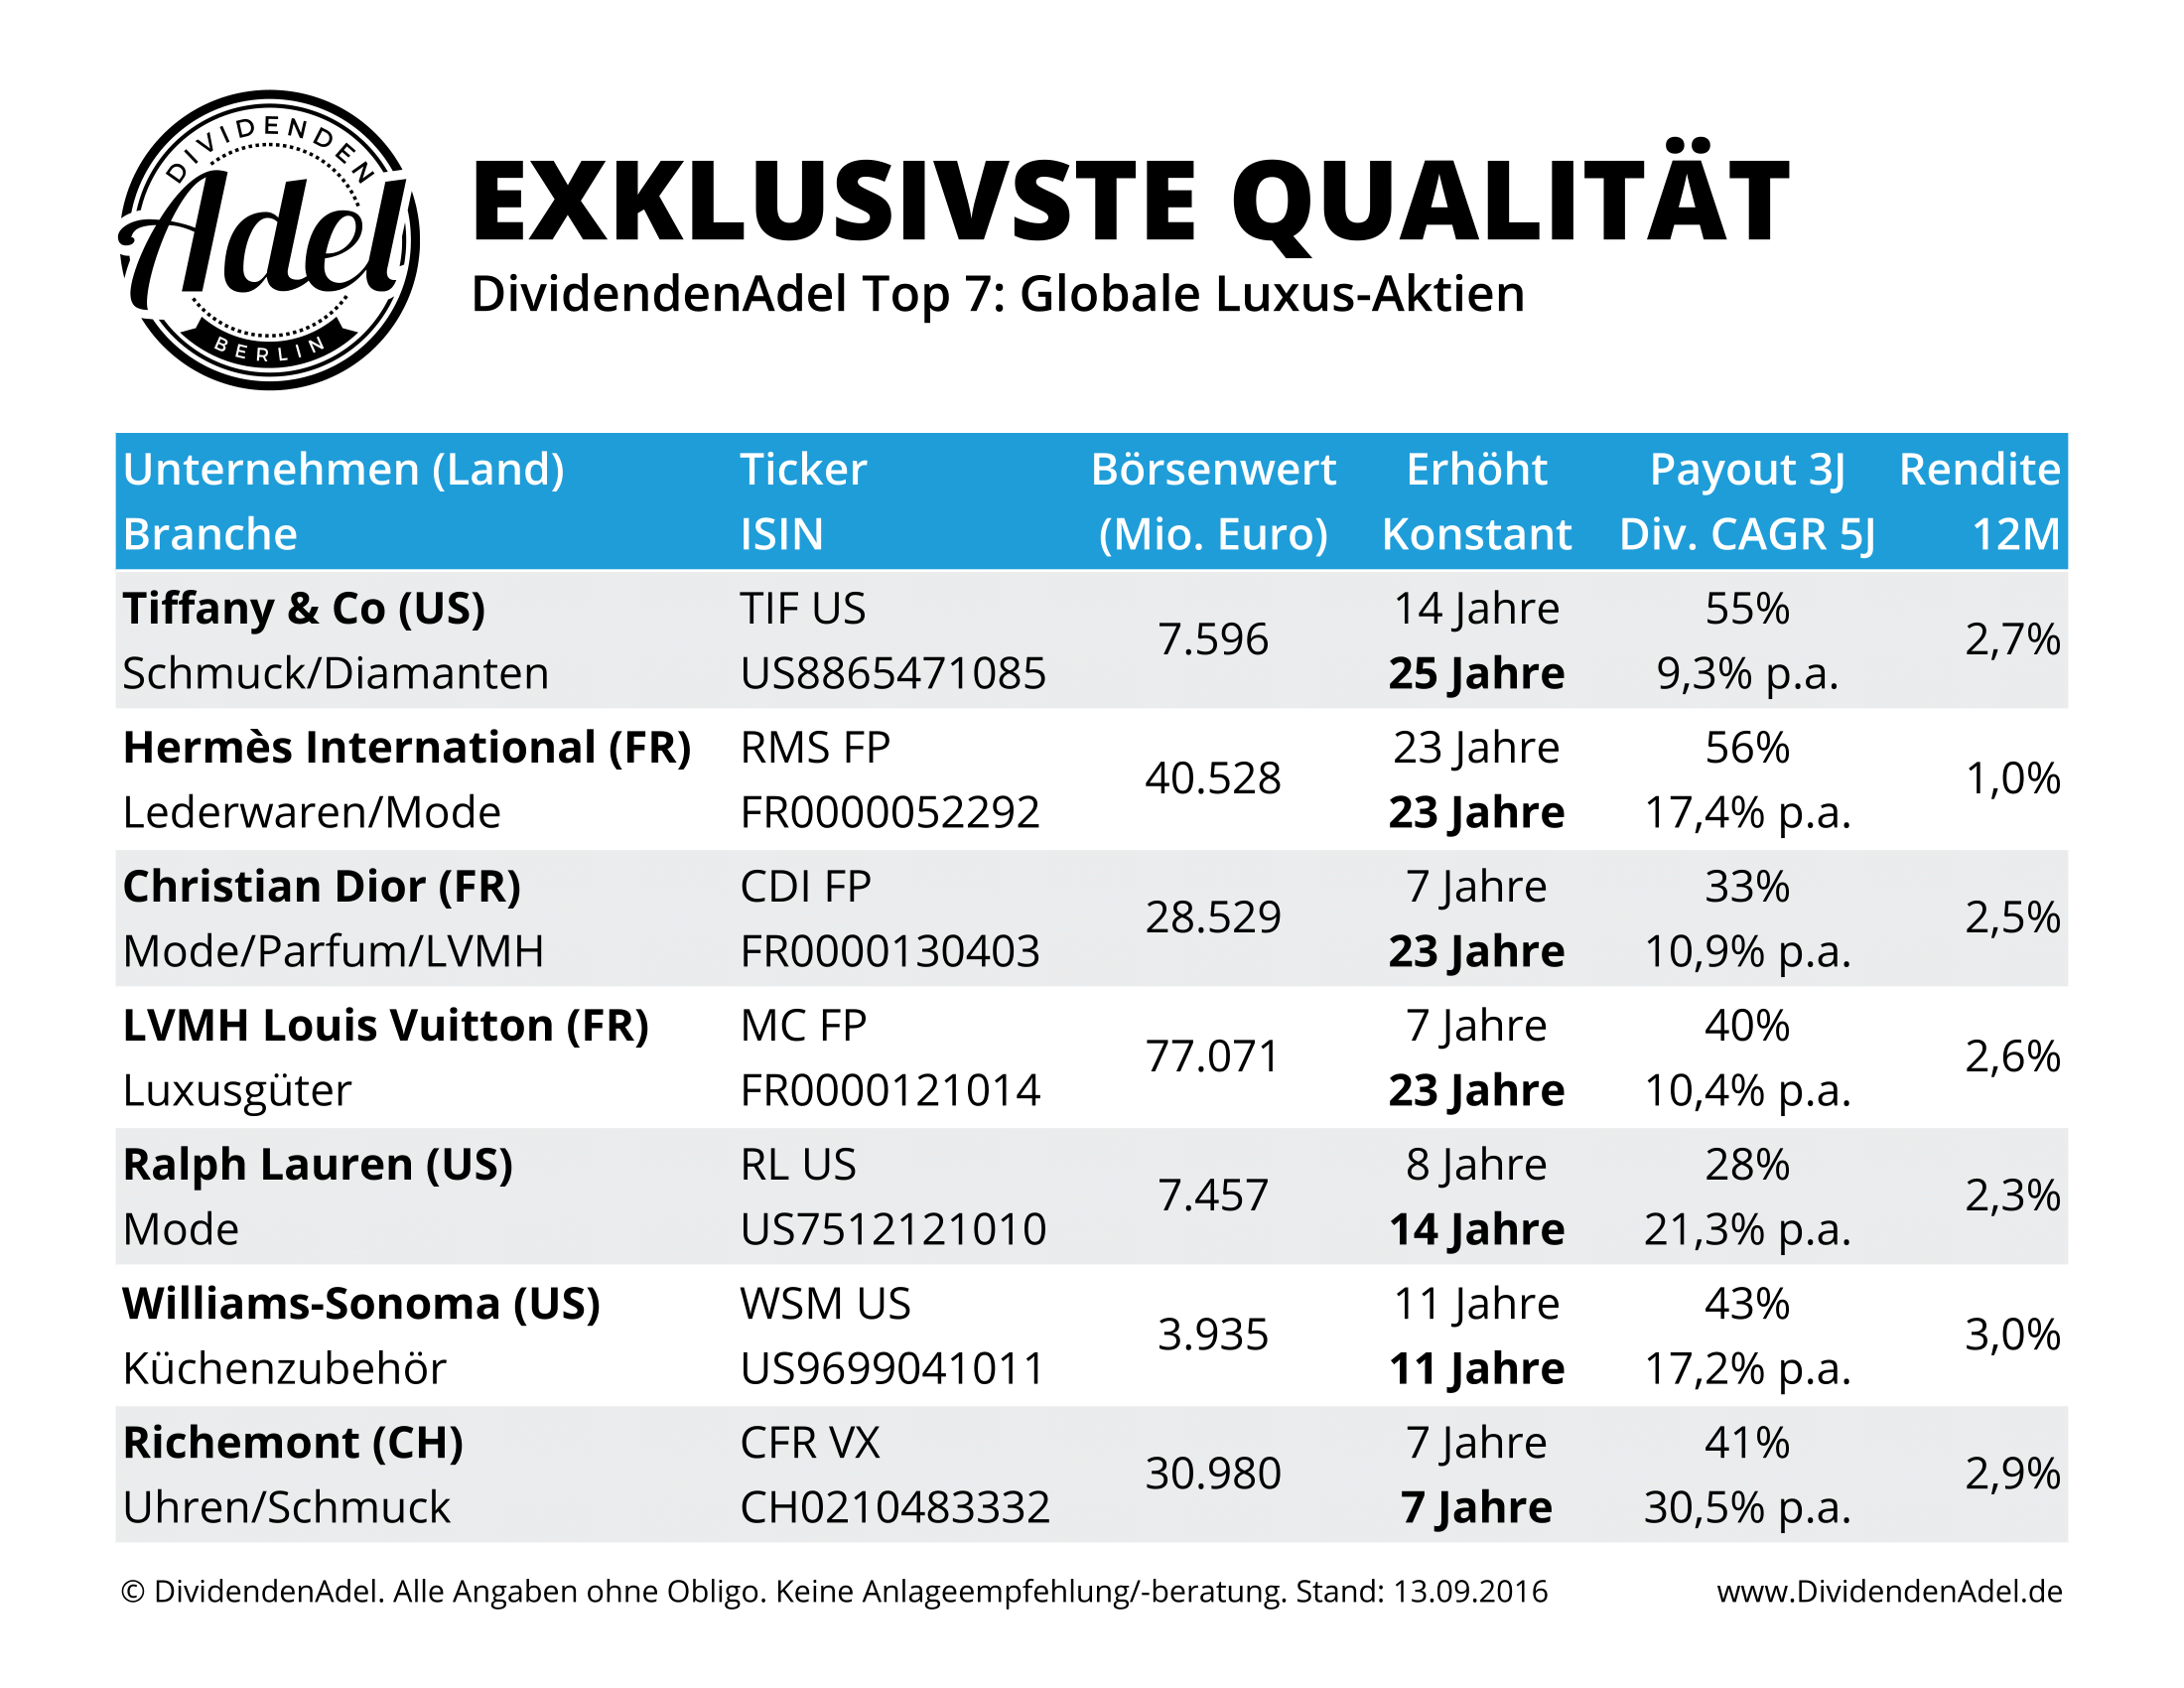 DividendenAdel Top 7 Luxus